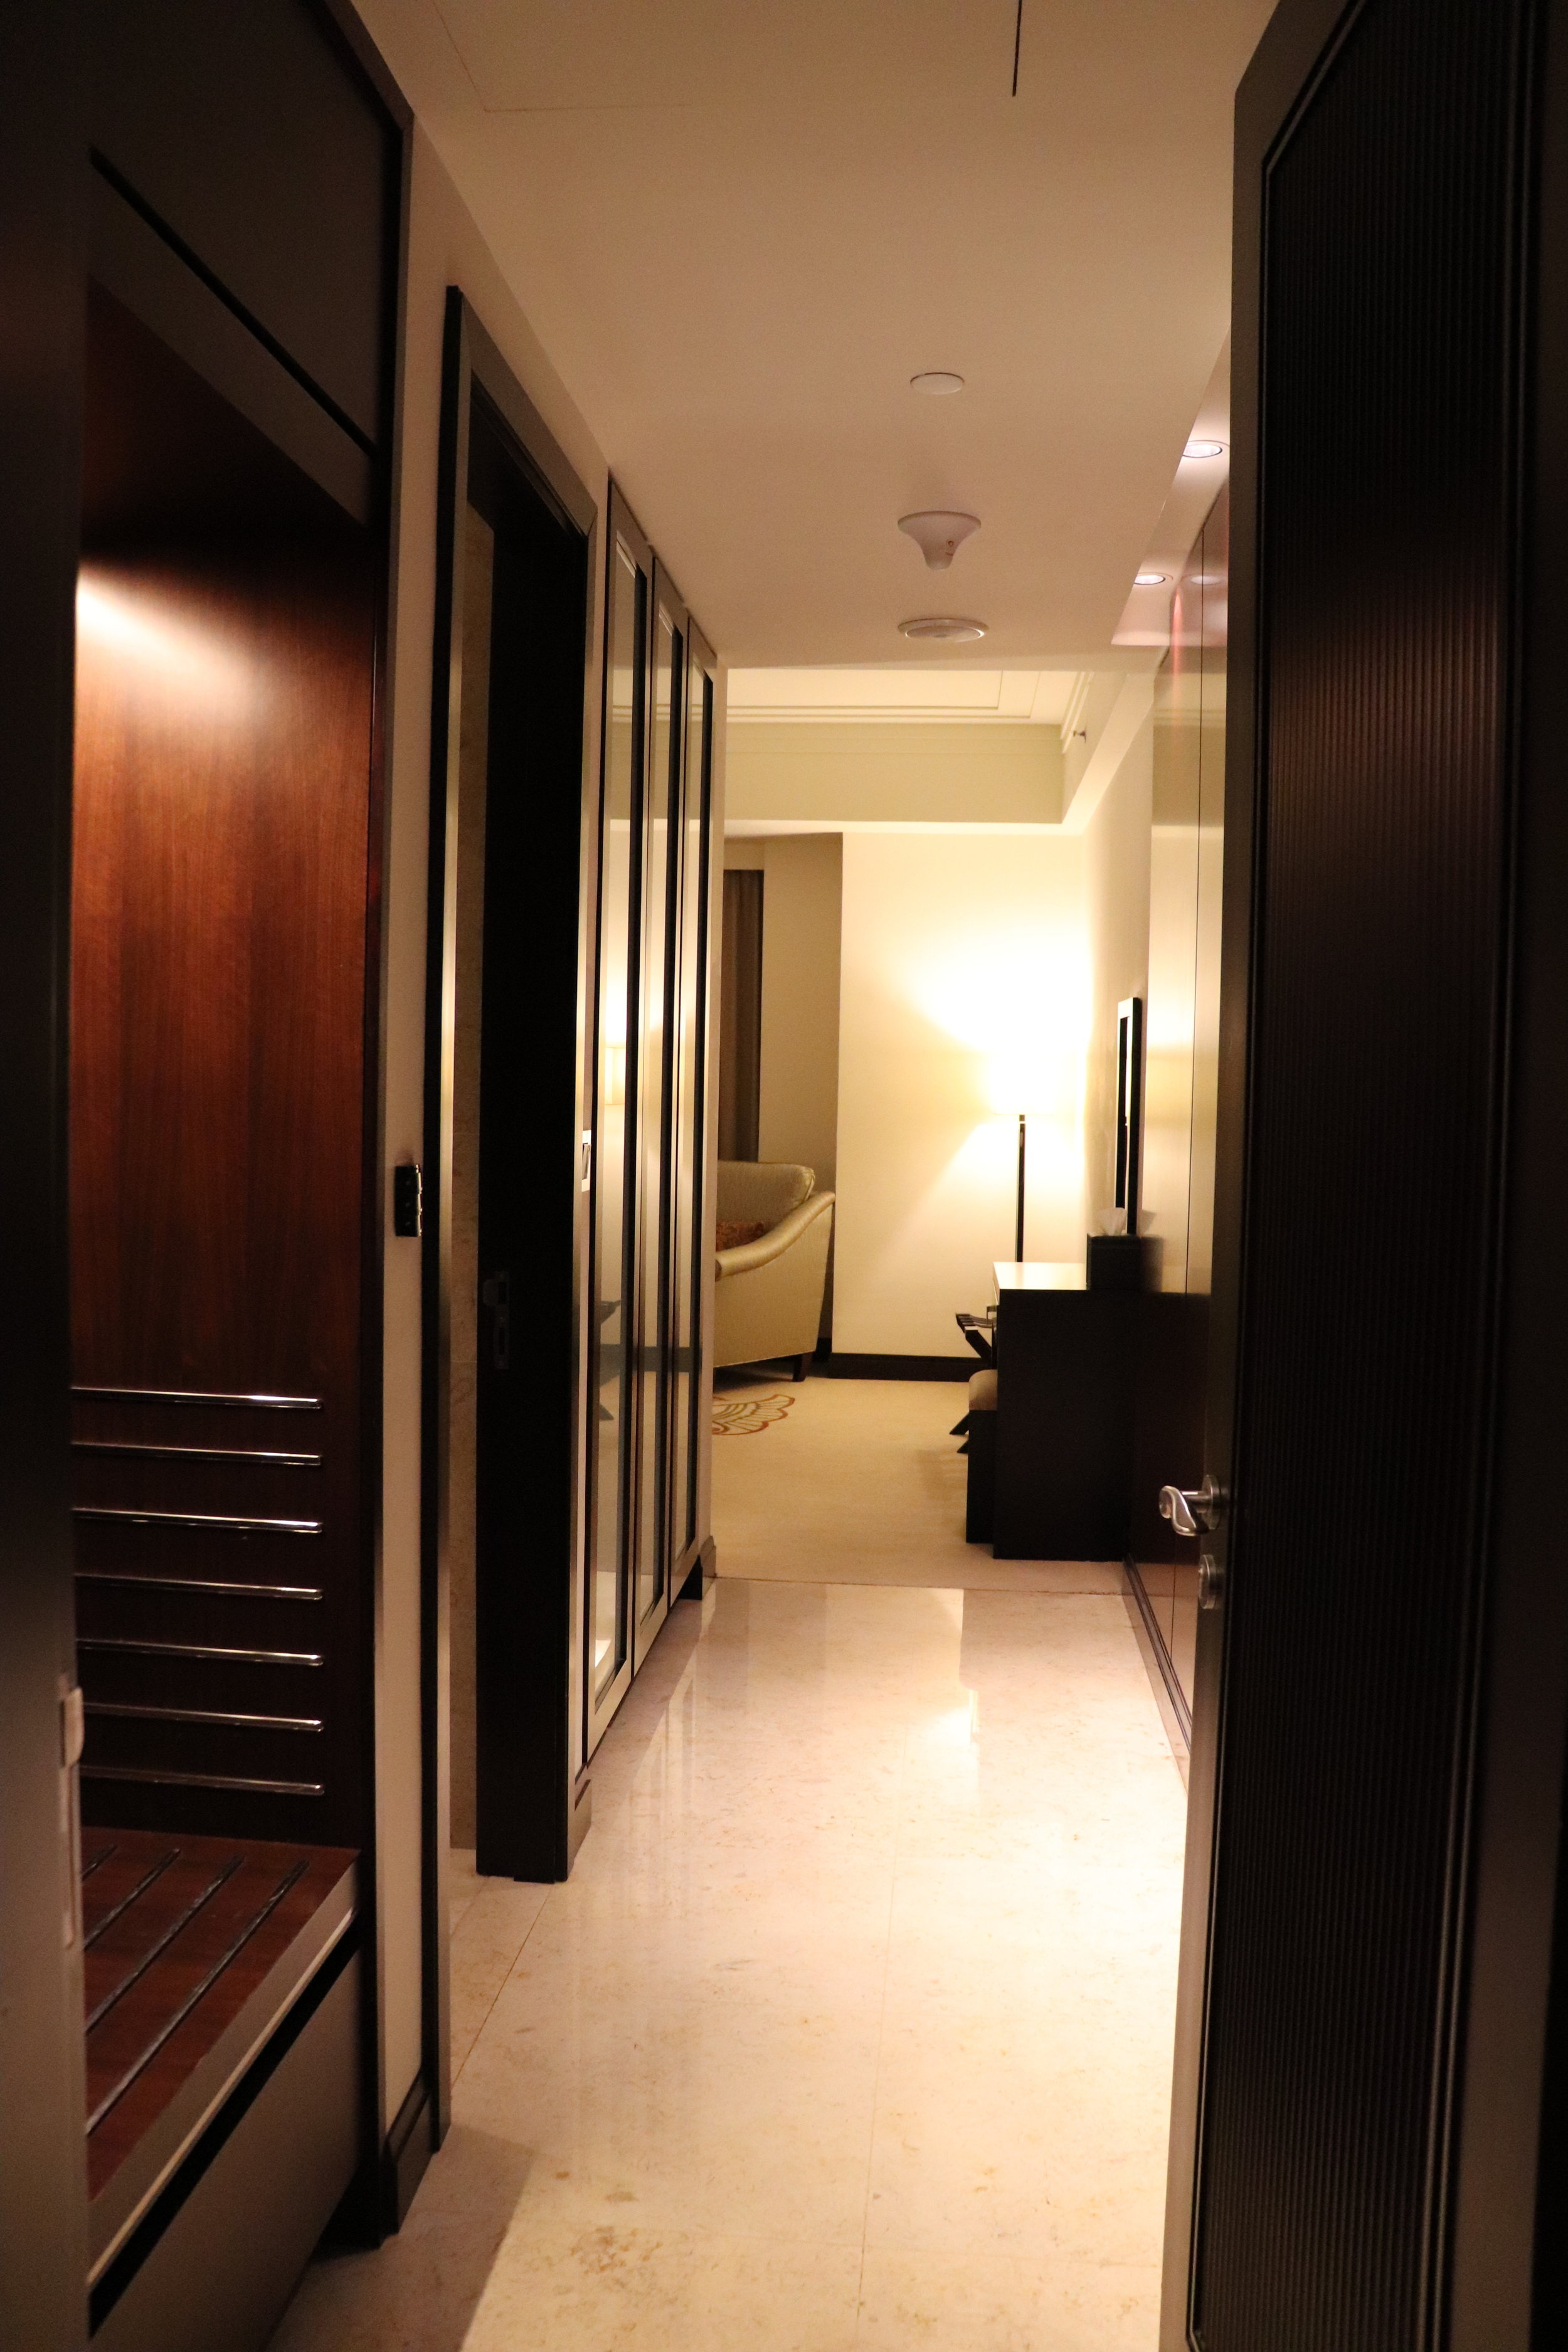 - About half way down the first hall way on the right a door opens to this hallway to the master bathroom and bedroom. There is plenty of closet and storage on the left. The first door on the left is the master bathroom. At the end of the hall is the bedroom.